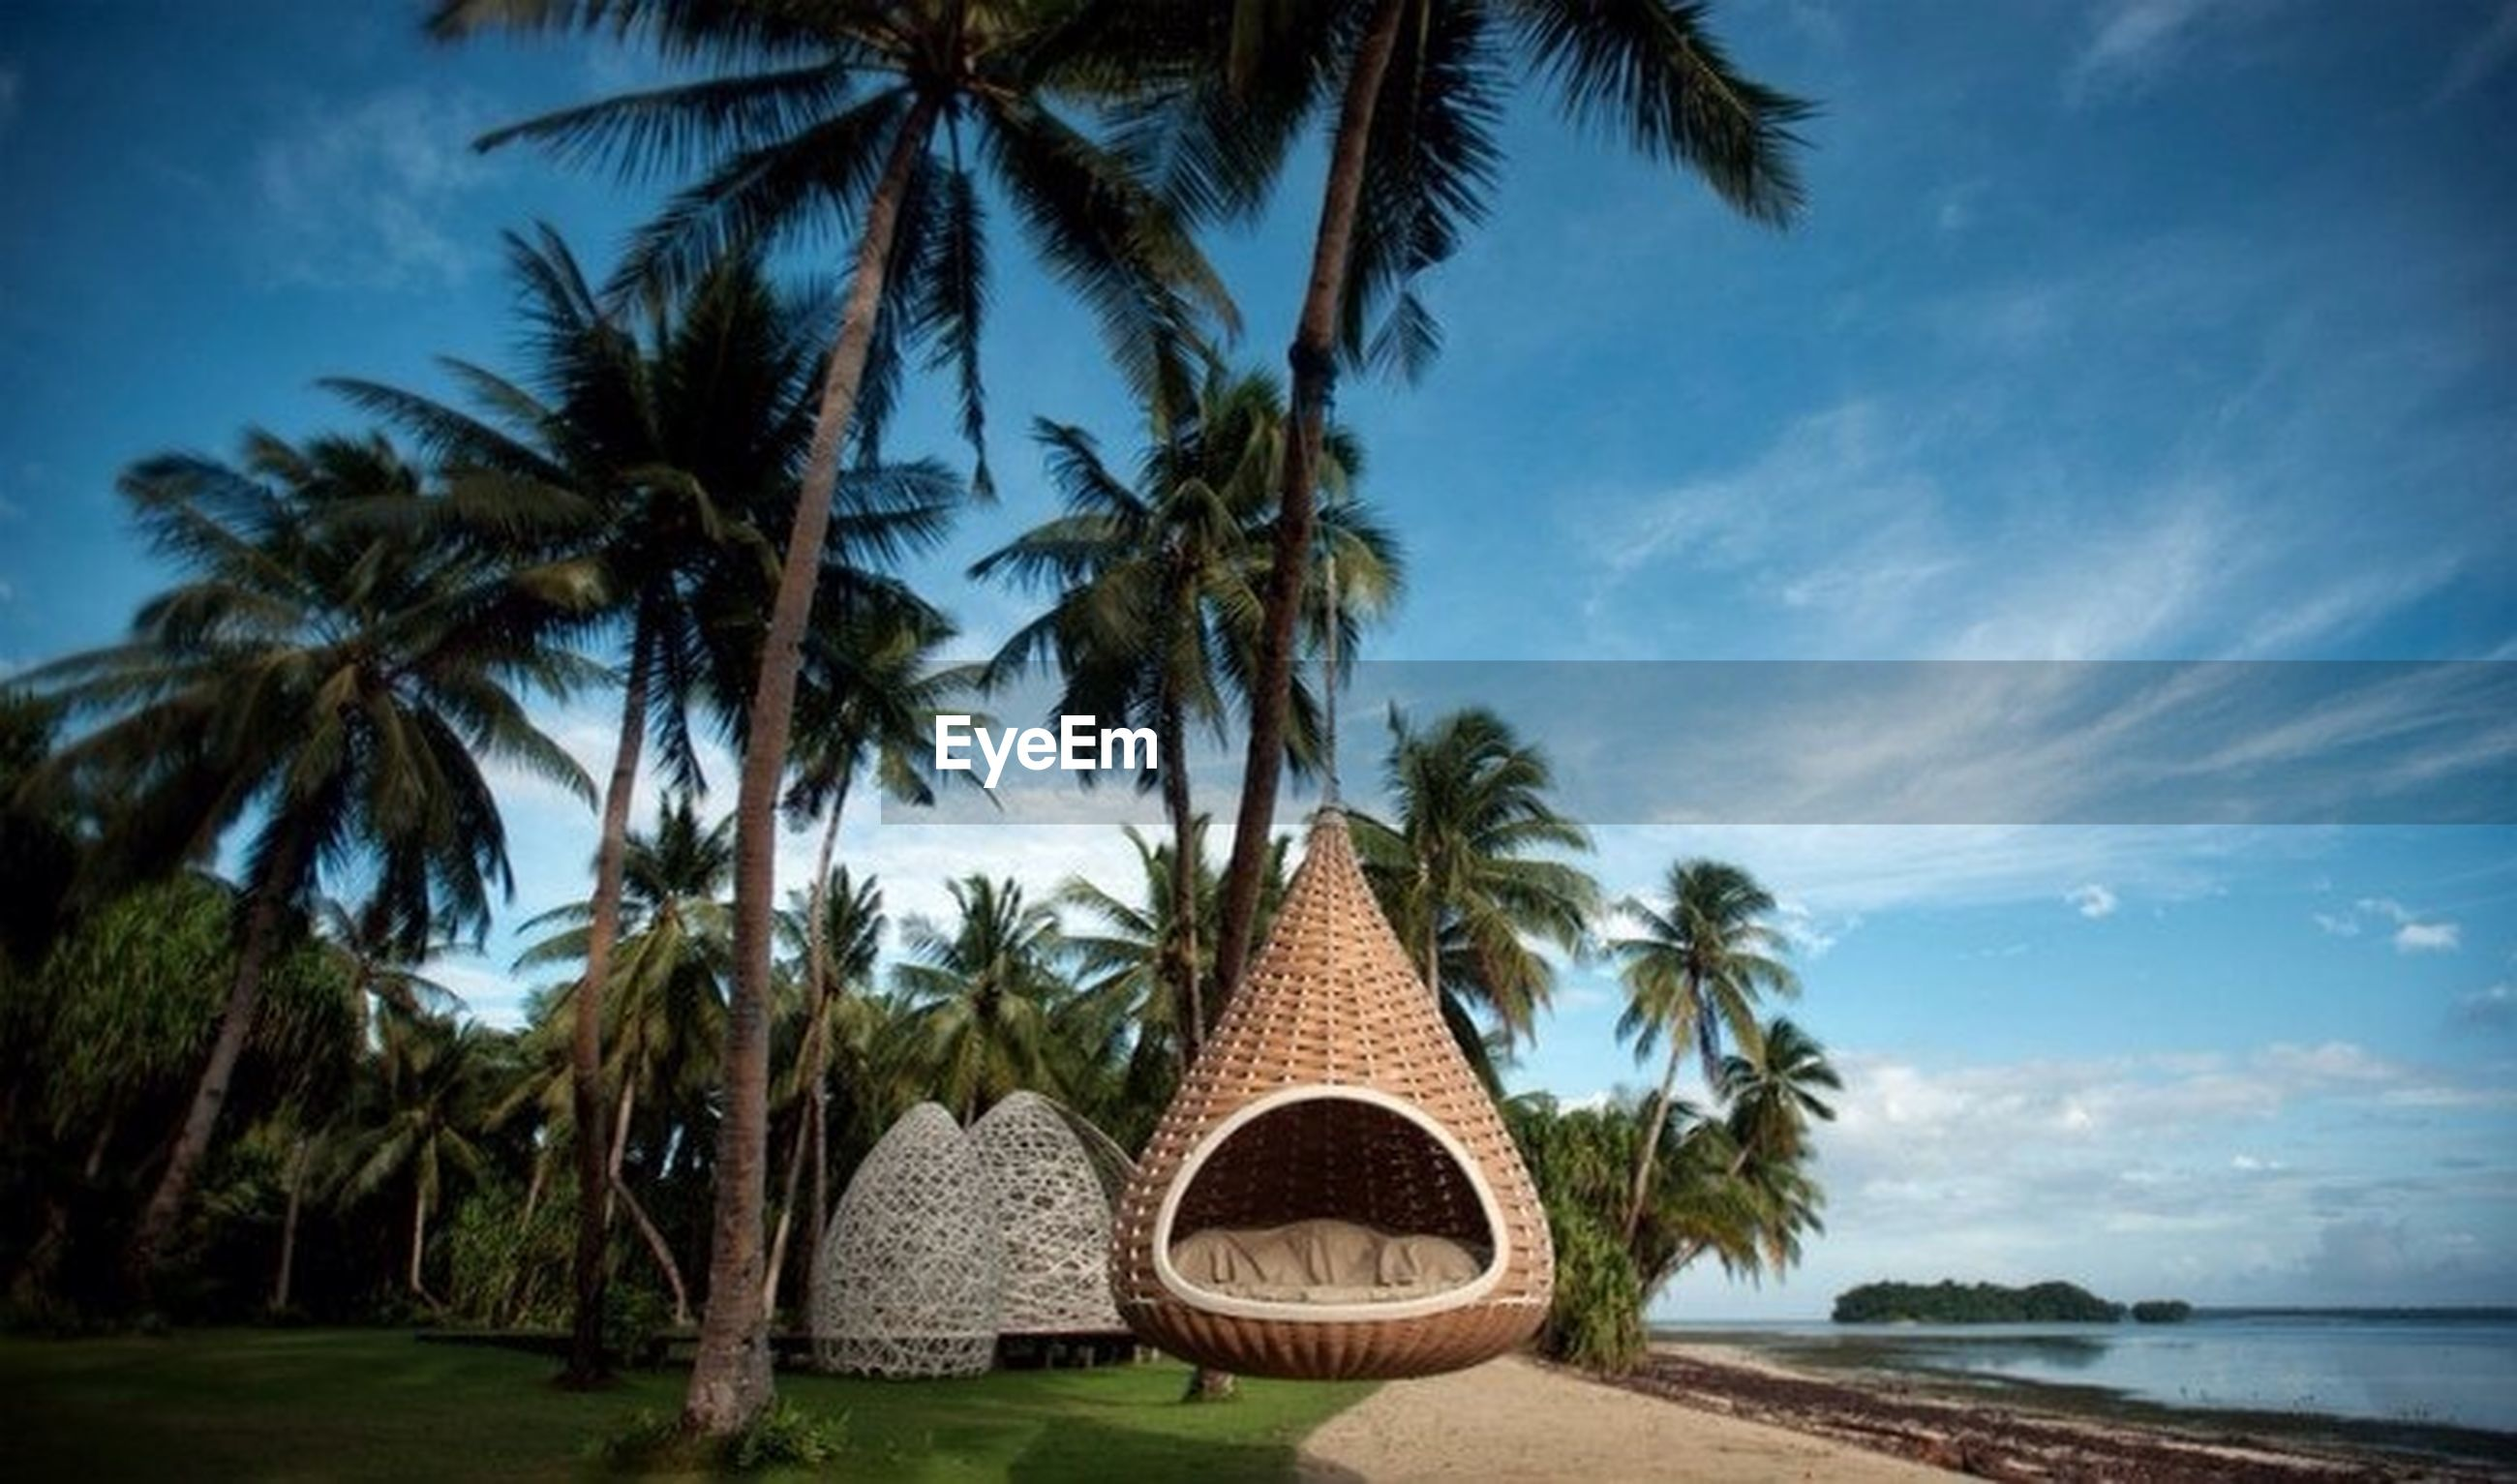 palm tree, tree, sky, growth, tranquility, nature, tranquil scene, built structure, tree trunk, cloud - sky, scenics, beach, coconut palm tree, green color, beauty in nature, outdoors, day, cloud, travel destinations, architecture